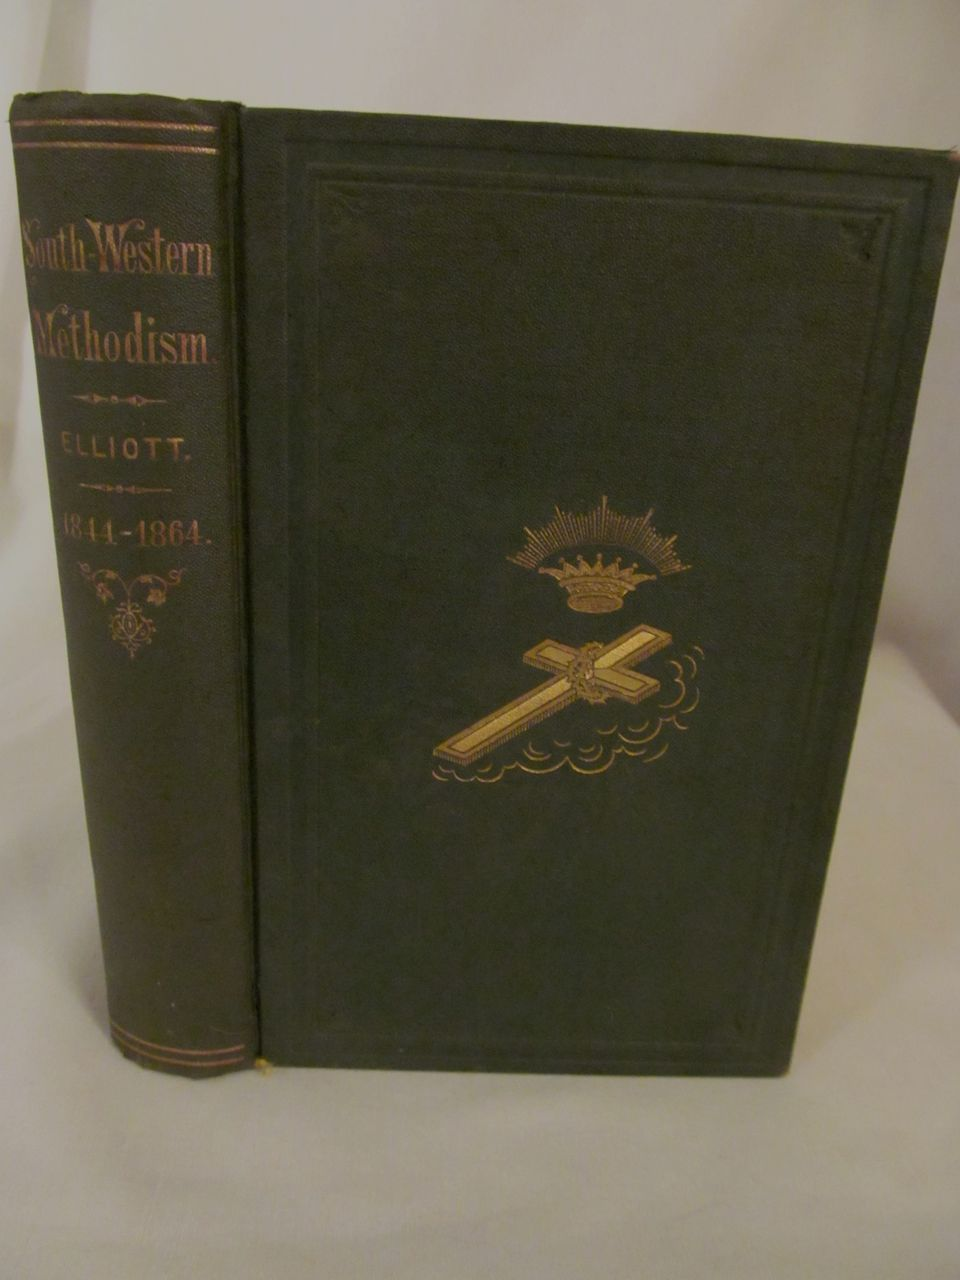 1868 South Western Methodism, A History of the M E Church in the South West from 1844-1866 by Rev Charles Elliott